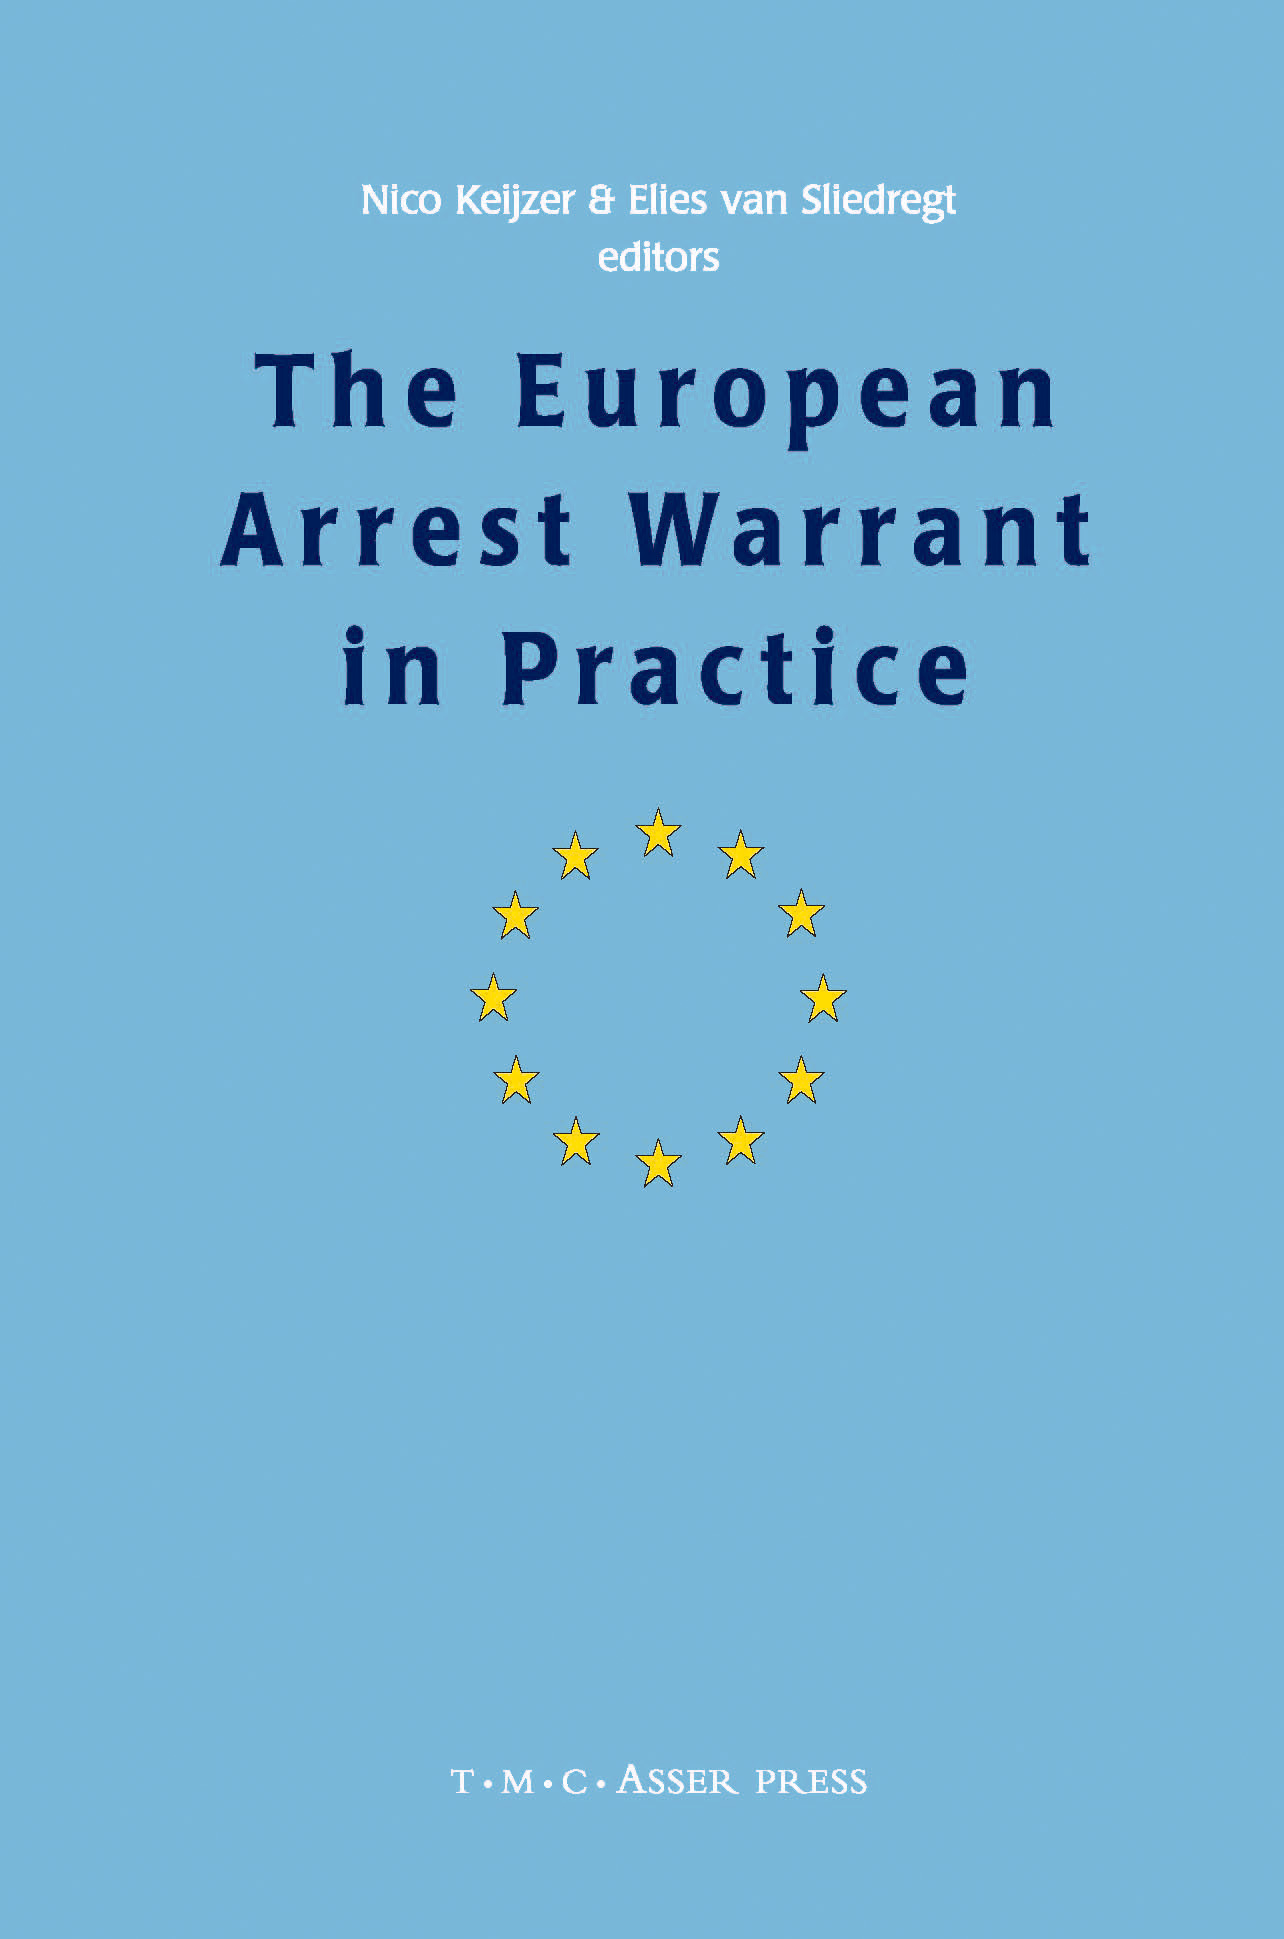 The European Arrest Warrant in Practice